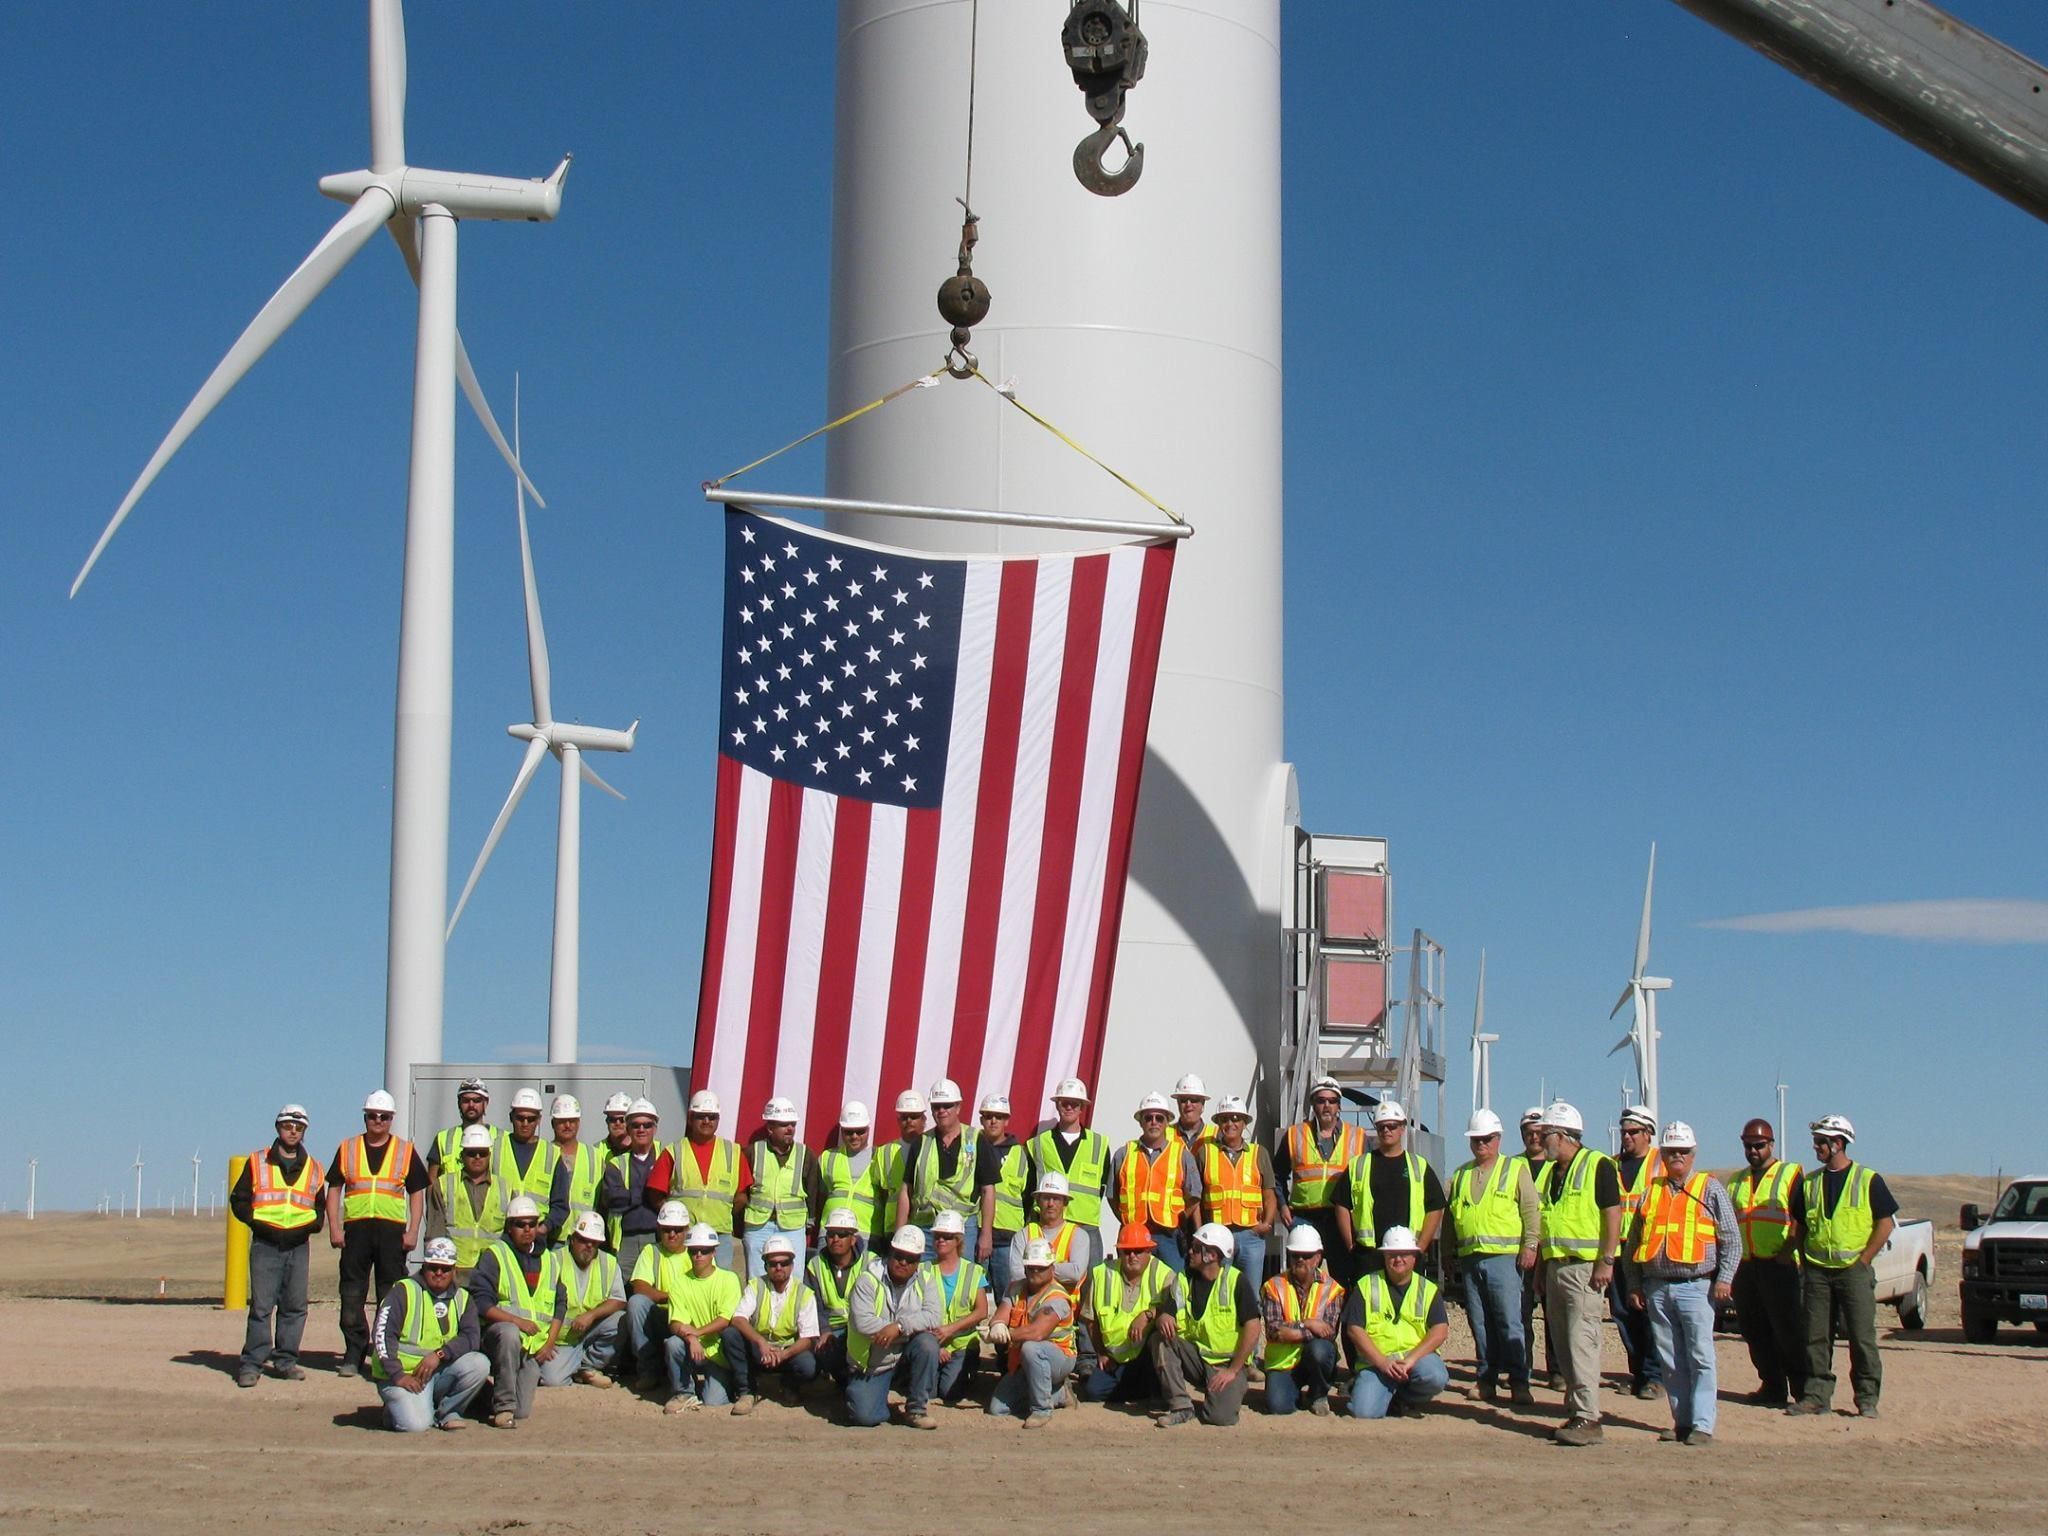 U.S. wind energy continues rapid growth in 2016